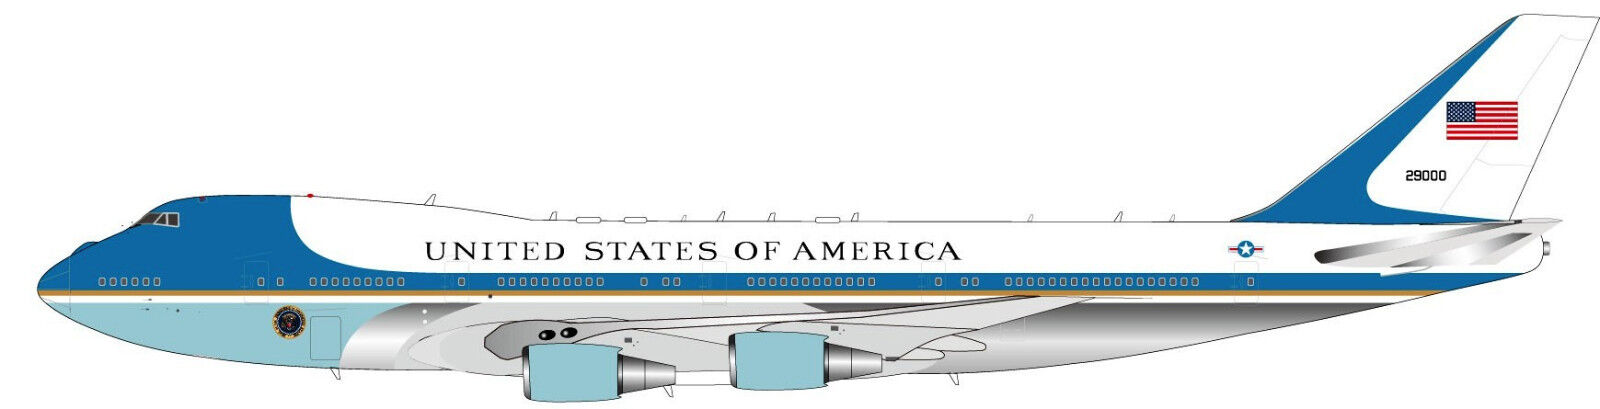 Ifaf1vc25apb 1 200 Air Force One B747-200 Ca-25a 29000 - Exclusif Support Sortie